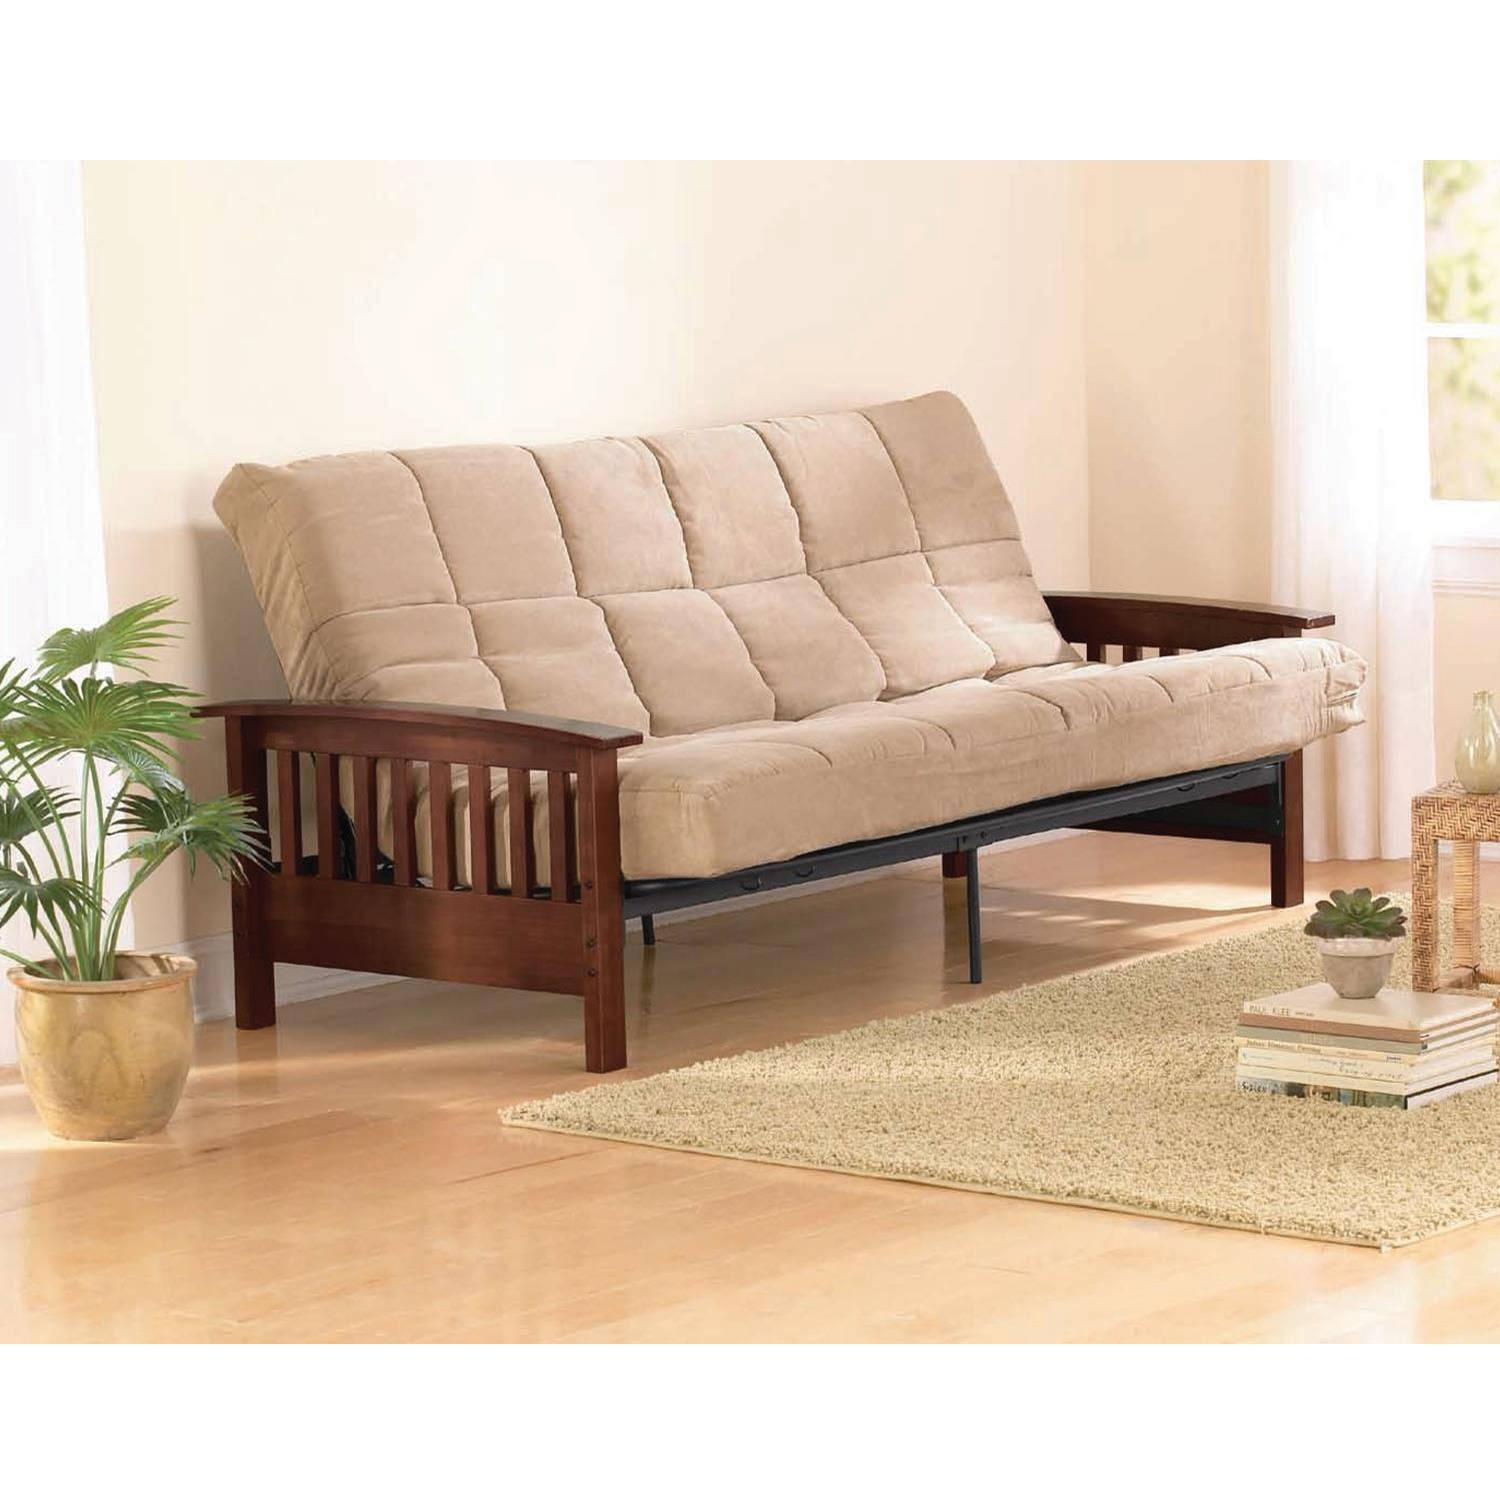 King Size Futon Sofa Bed | Roselawnlutheran Within King Size Sofa Beds (Image 7 of 20)